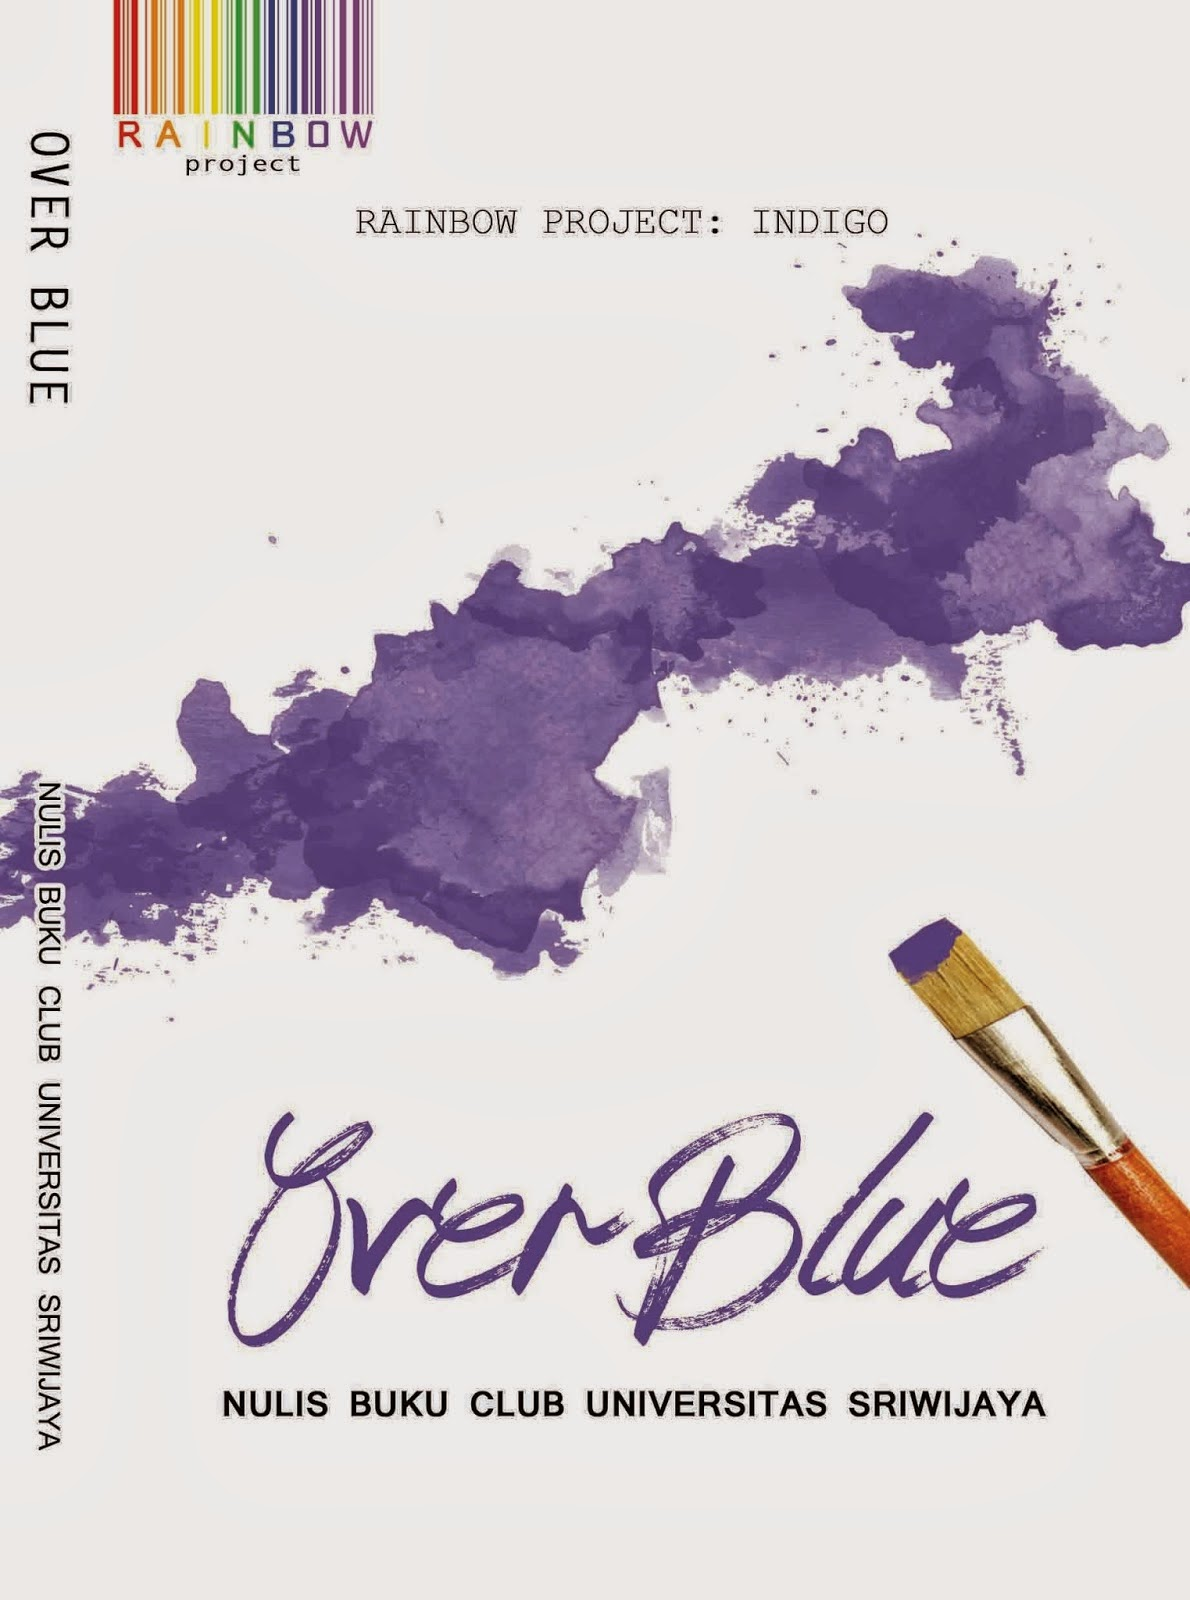 http://luphly-shie.blogspot.com/2014/03/my-book-over-blue.html